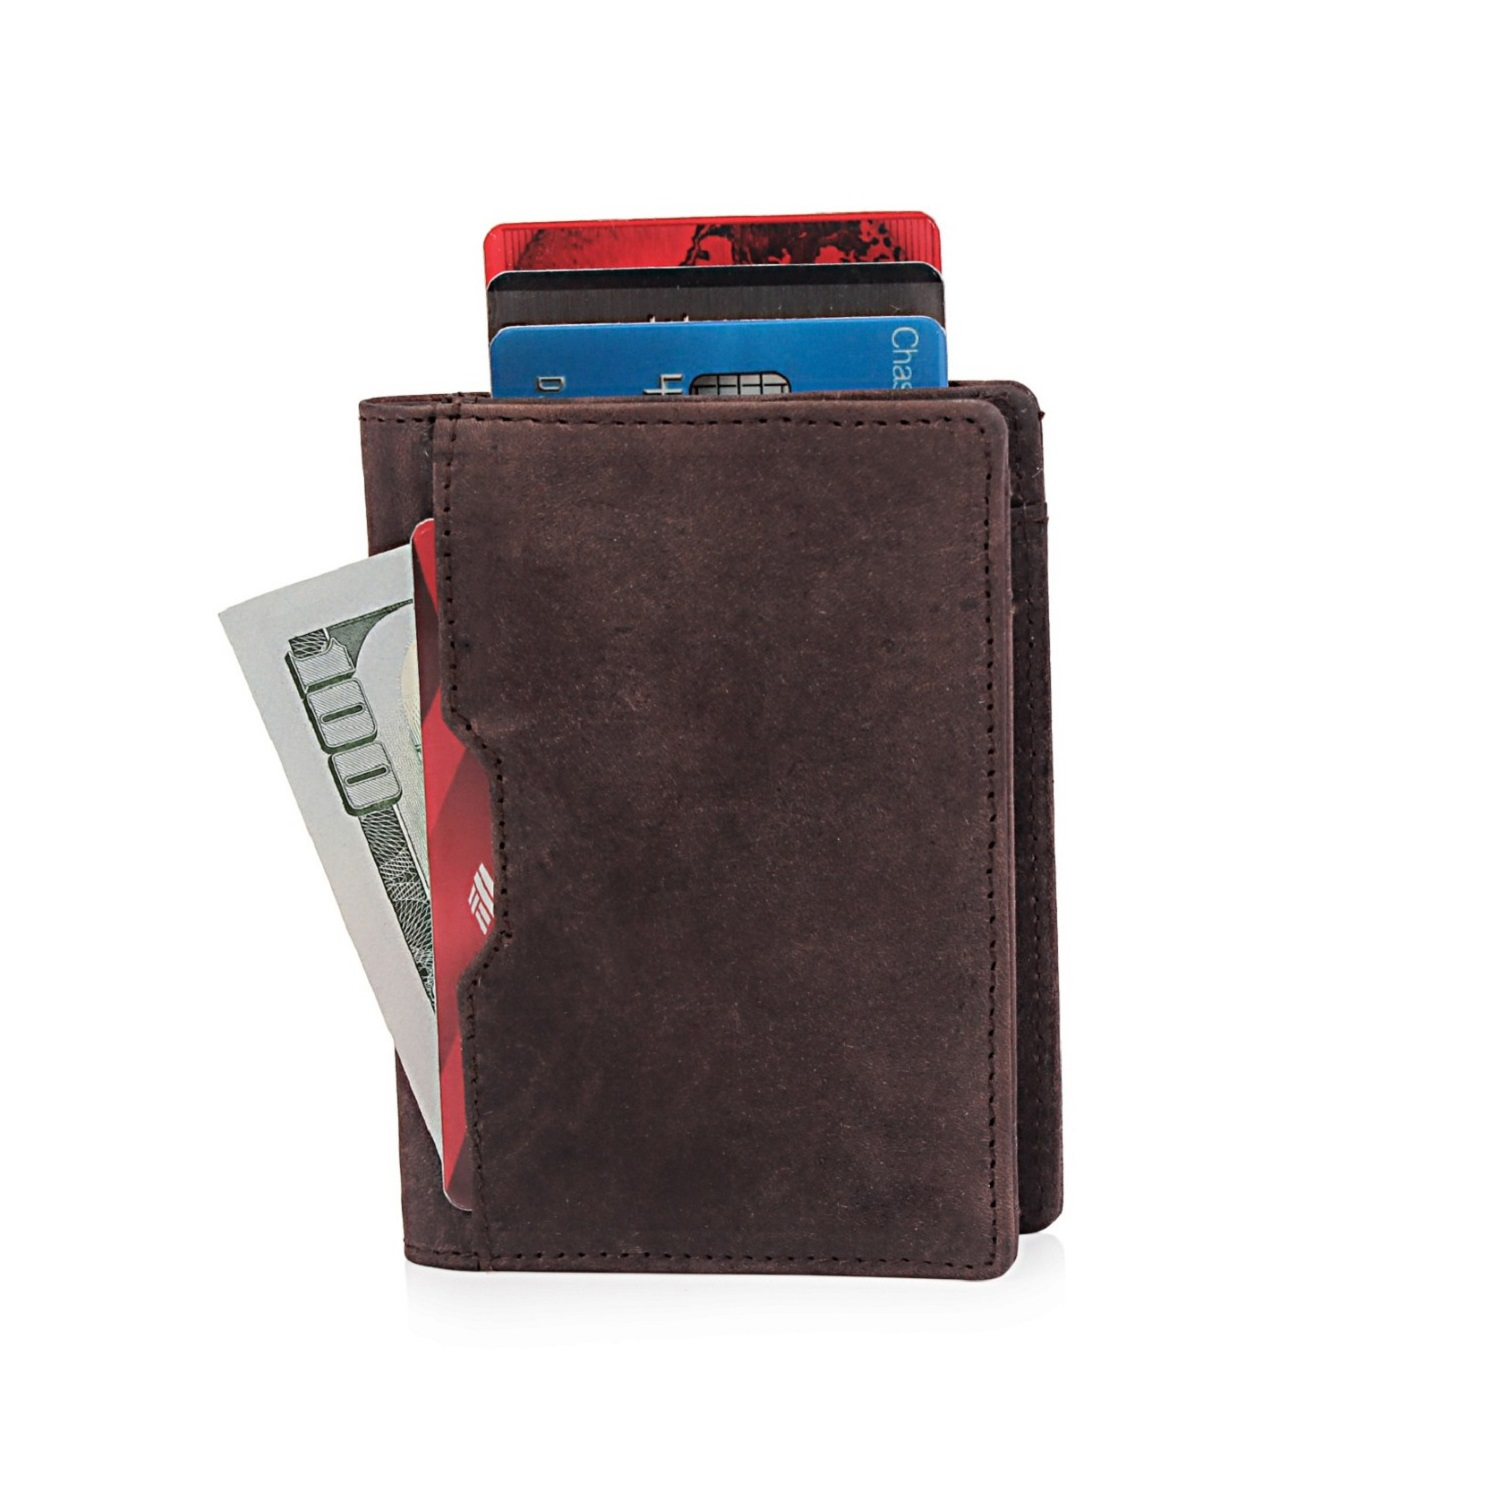 Leather Card Holder Wallet Manufacturers In Delaware, Card Holder Wallet Suppliers In Delaware, Card Holder Wallet Wholesalers In Delaware, Card Holder Wallet Traders In Delaware